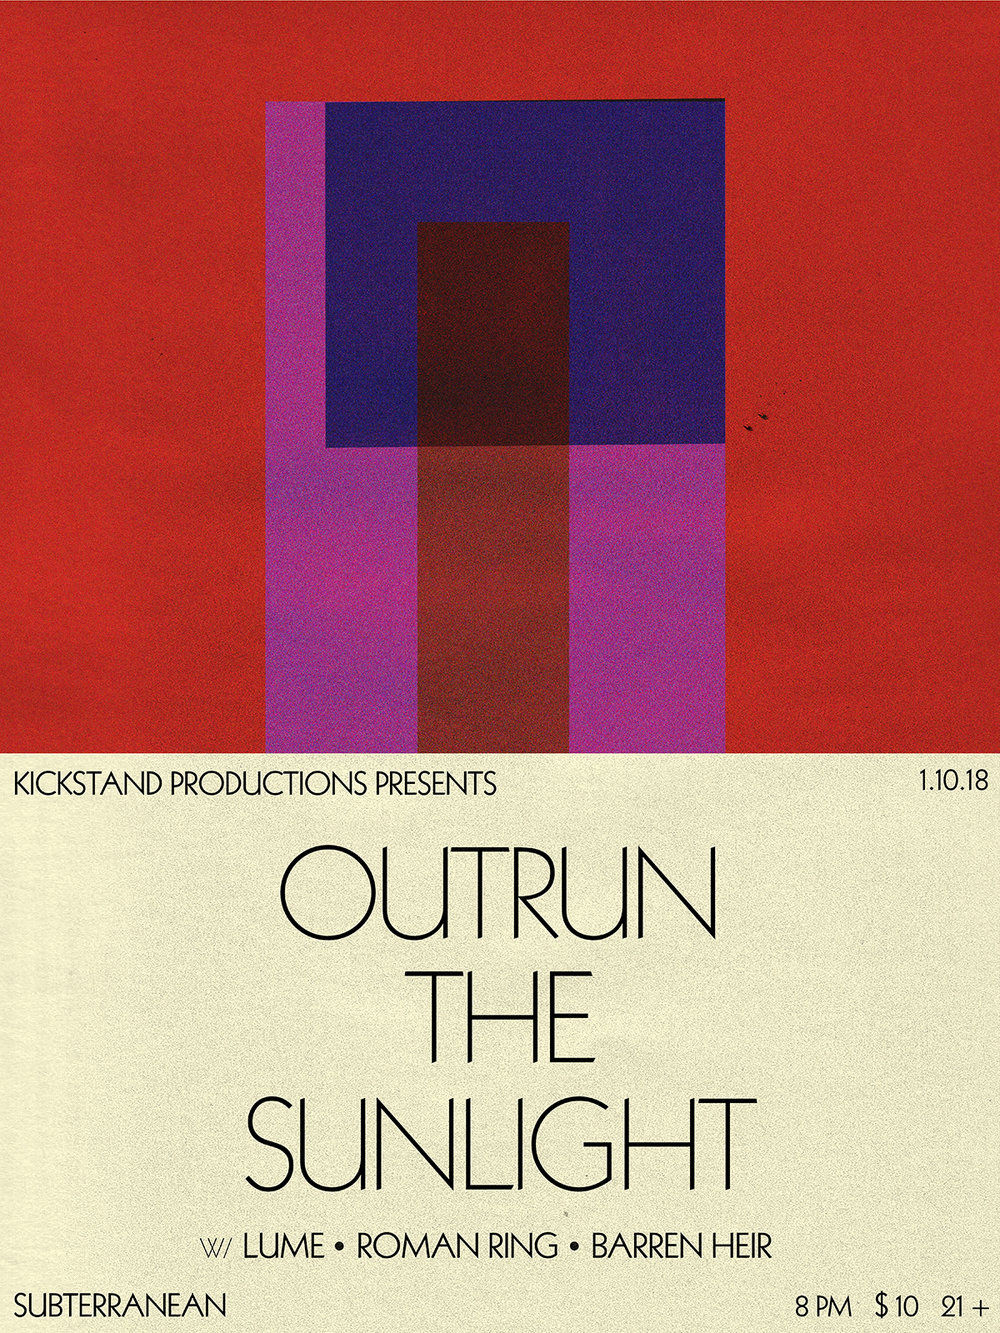 Outrun the Sunlight, Subterranean_1200.jpg